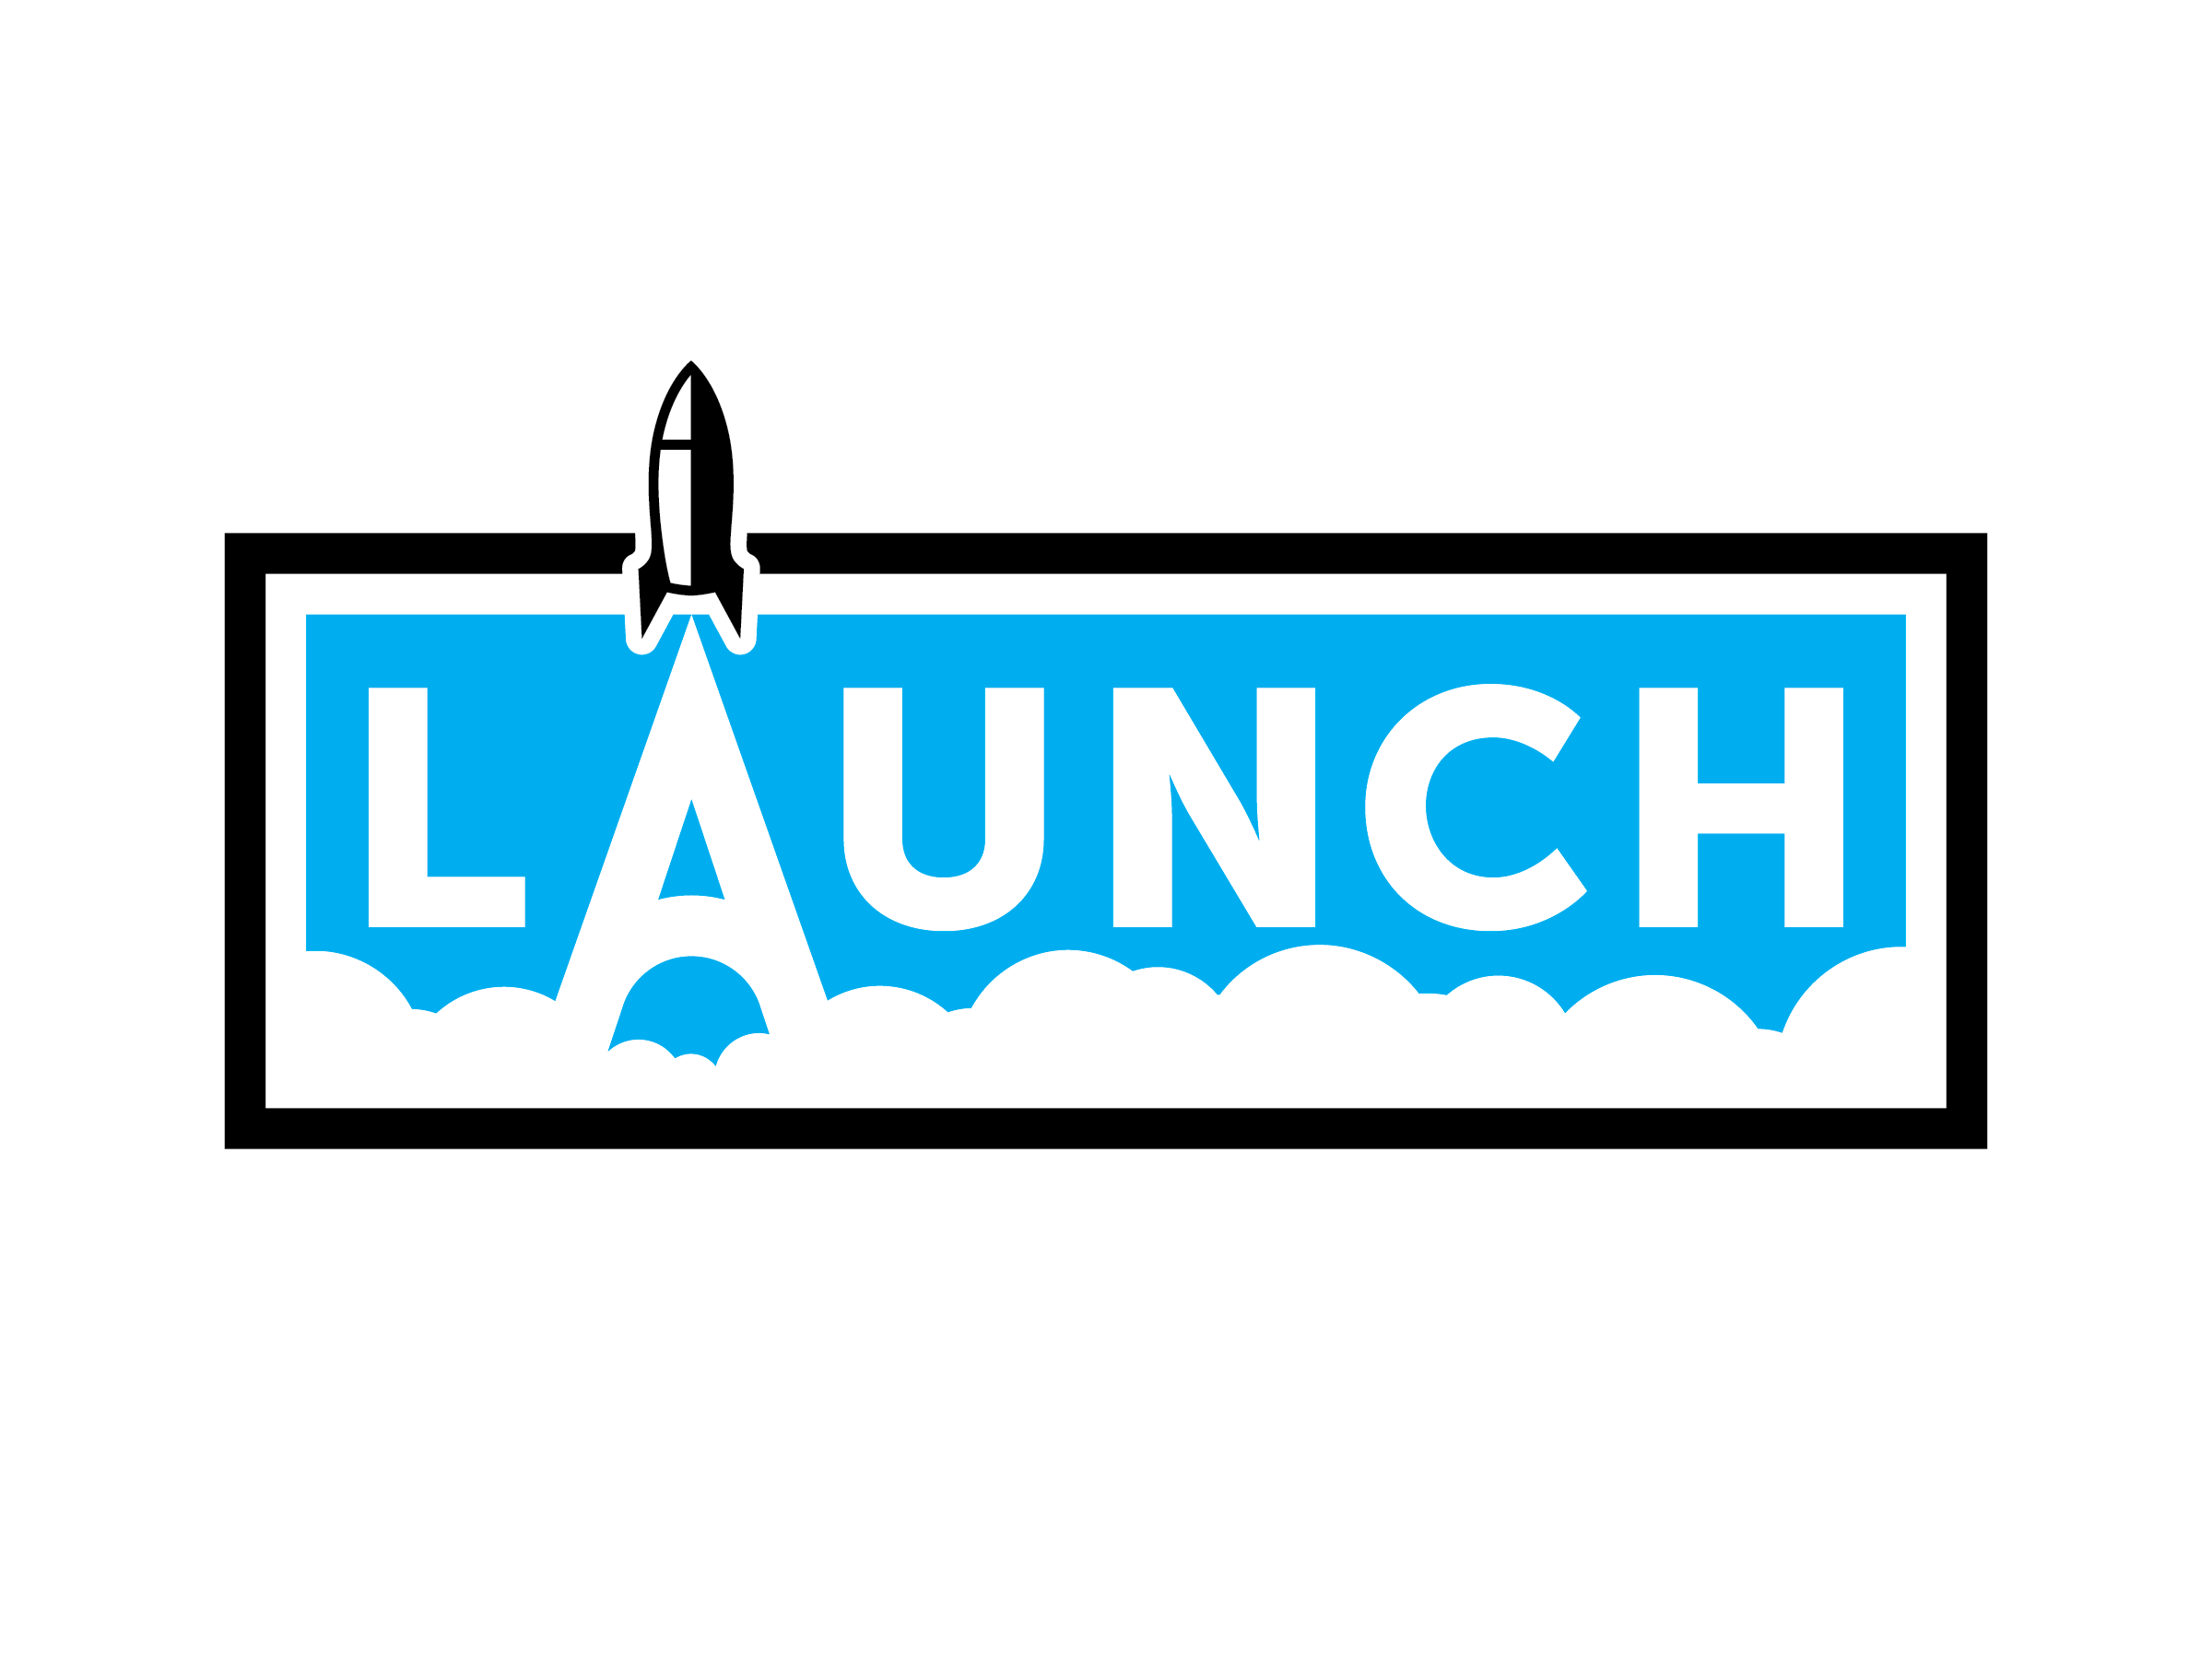 Launch - May 19Launch is a class designed to introduce you to CCC as a whole, our core beliefs, and what it means to engage as a Christian, partnering your God-given gifts with CCC to advance the kingdom of Christ.